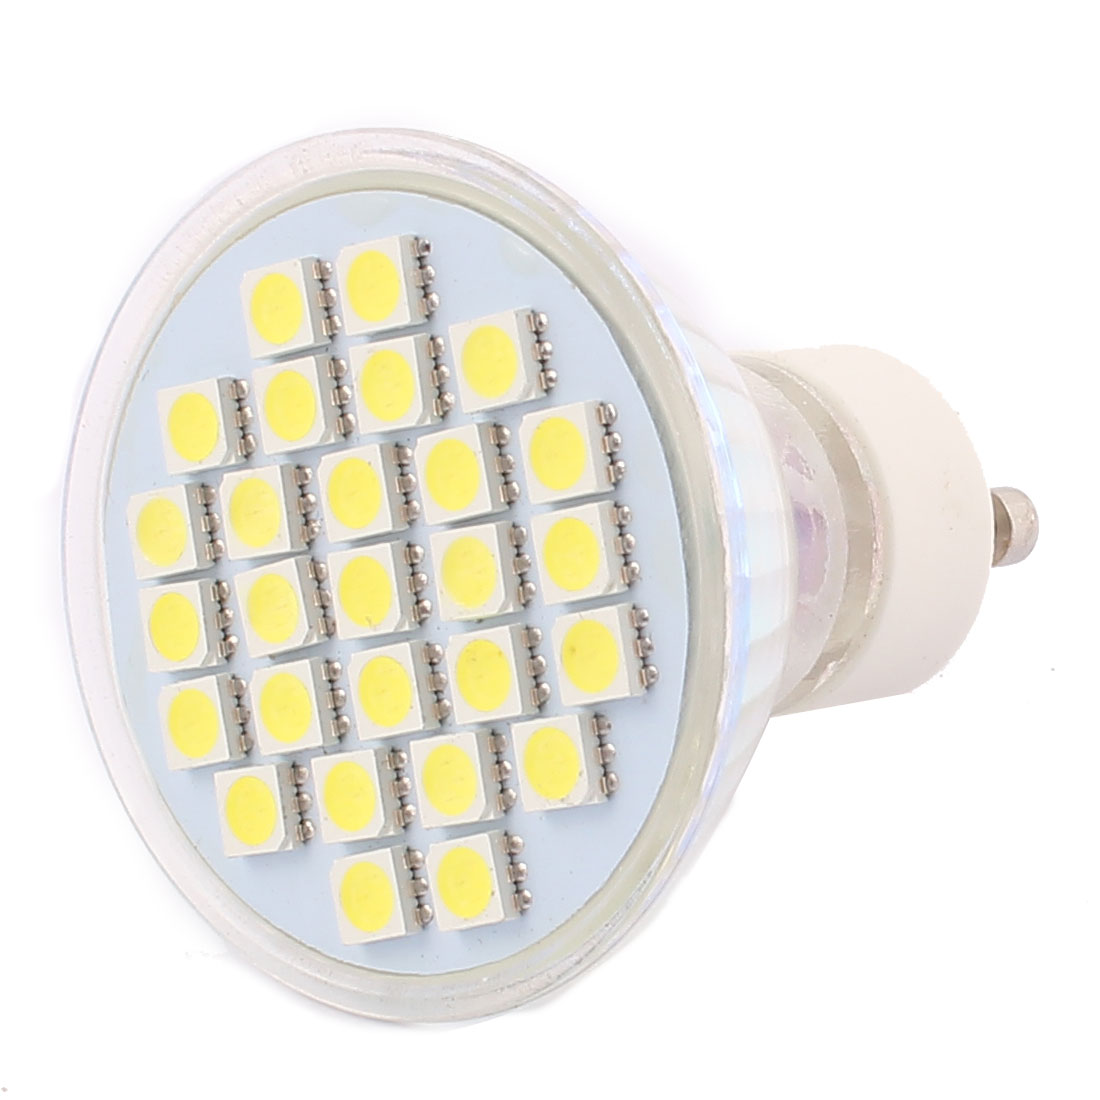 GU10 SMD5050 27LEDs AC 110V 4W Glass Energy Saving LED Lamp Bulb White